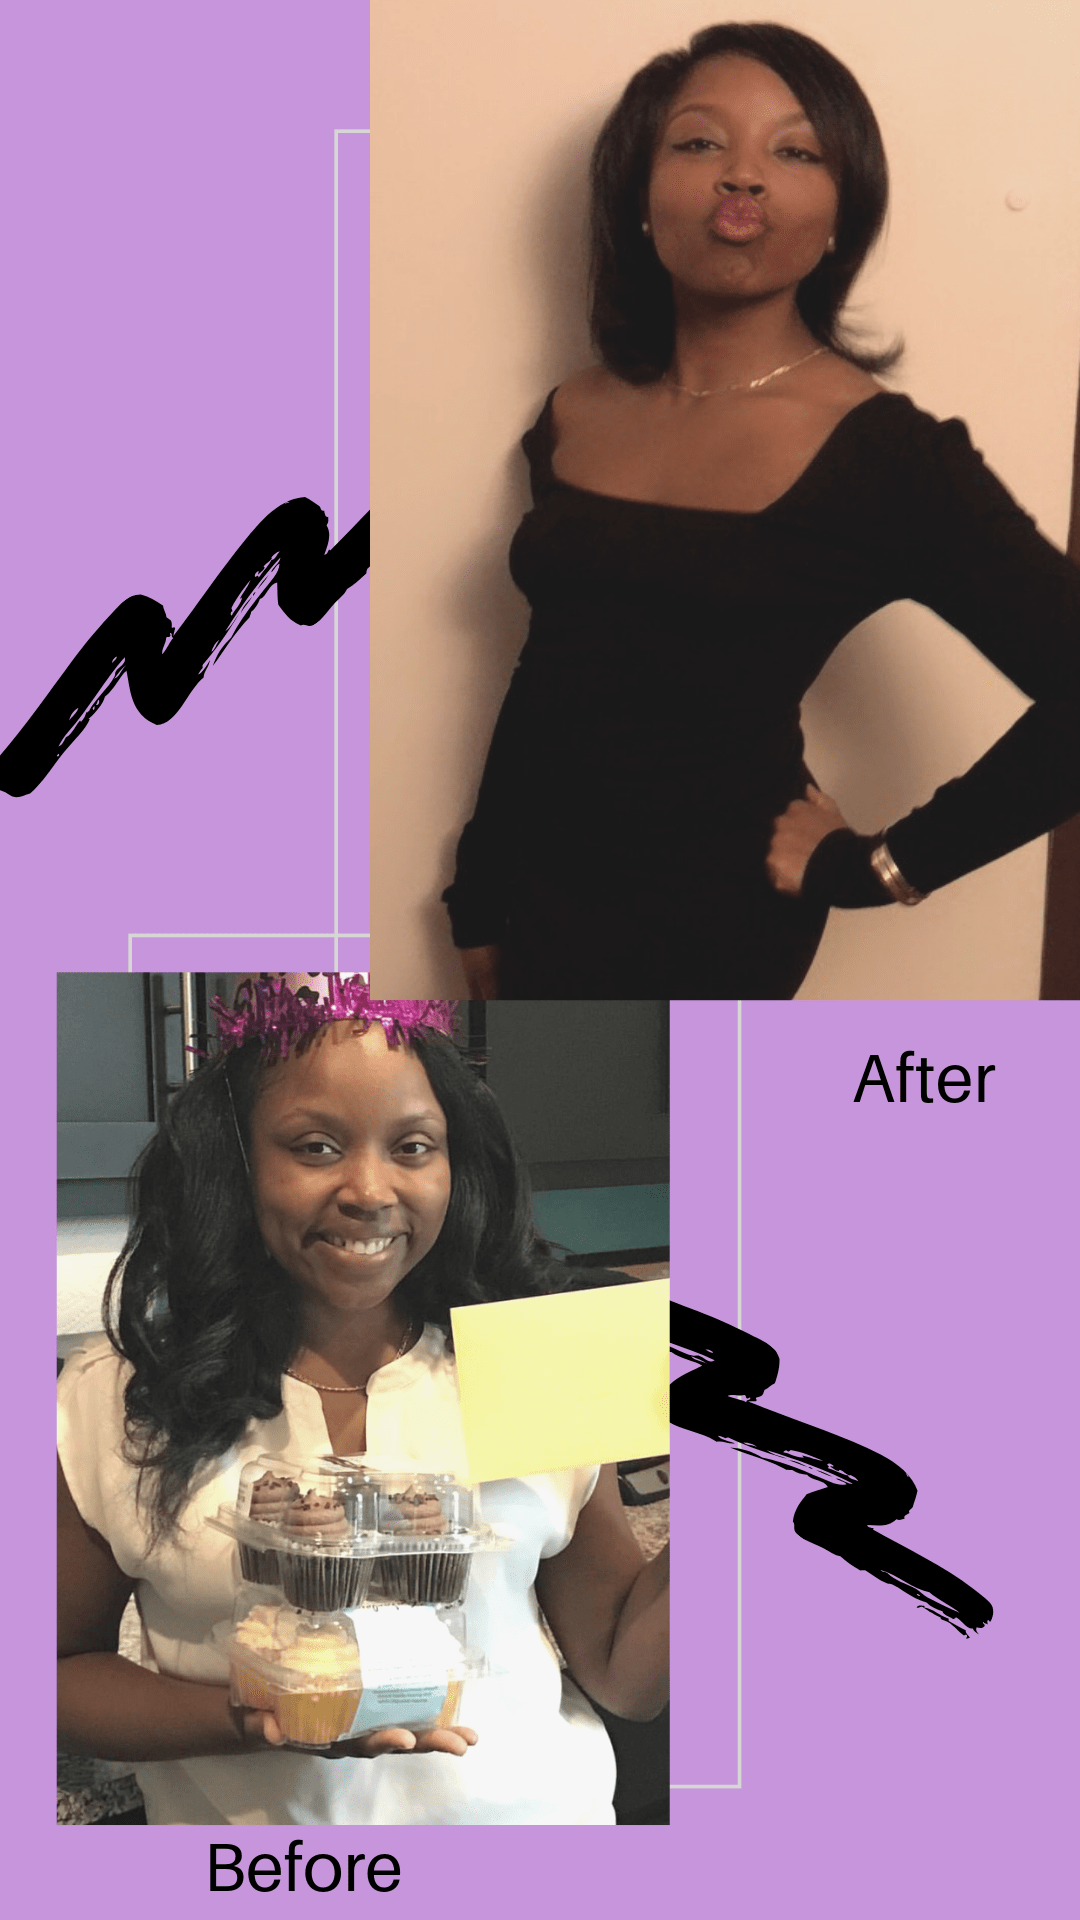 The before and after pictures of a woman that does to keto or ketogenic diet. It's a lifestyle change and a great way to lose weight.